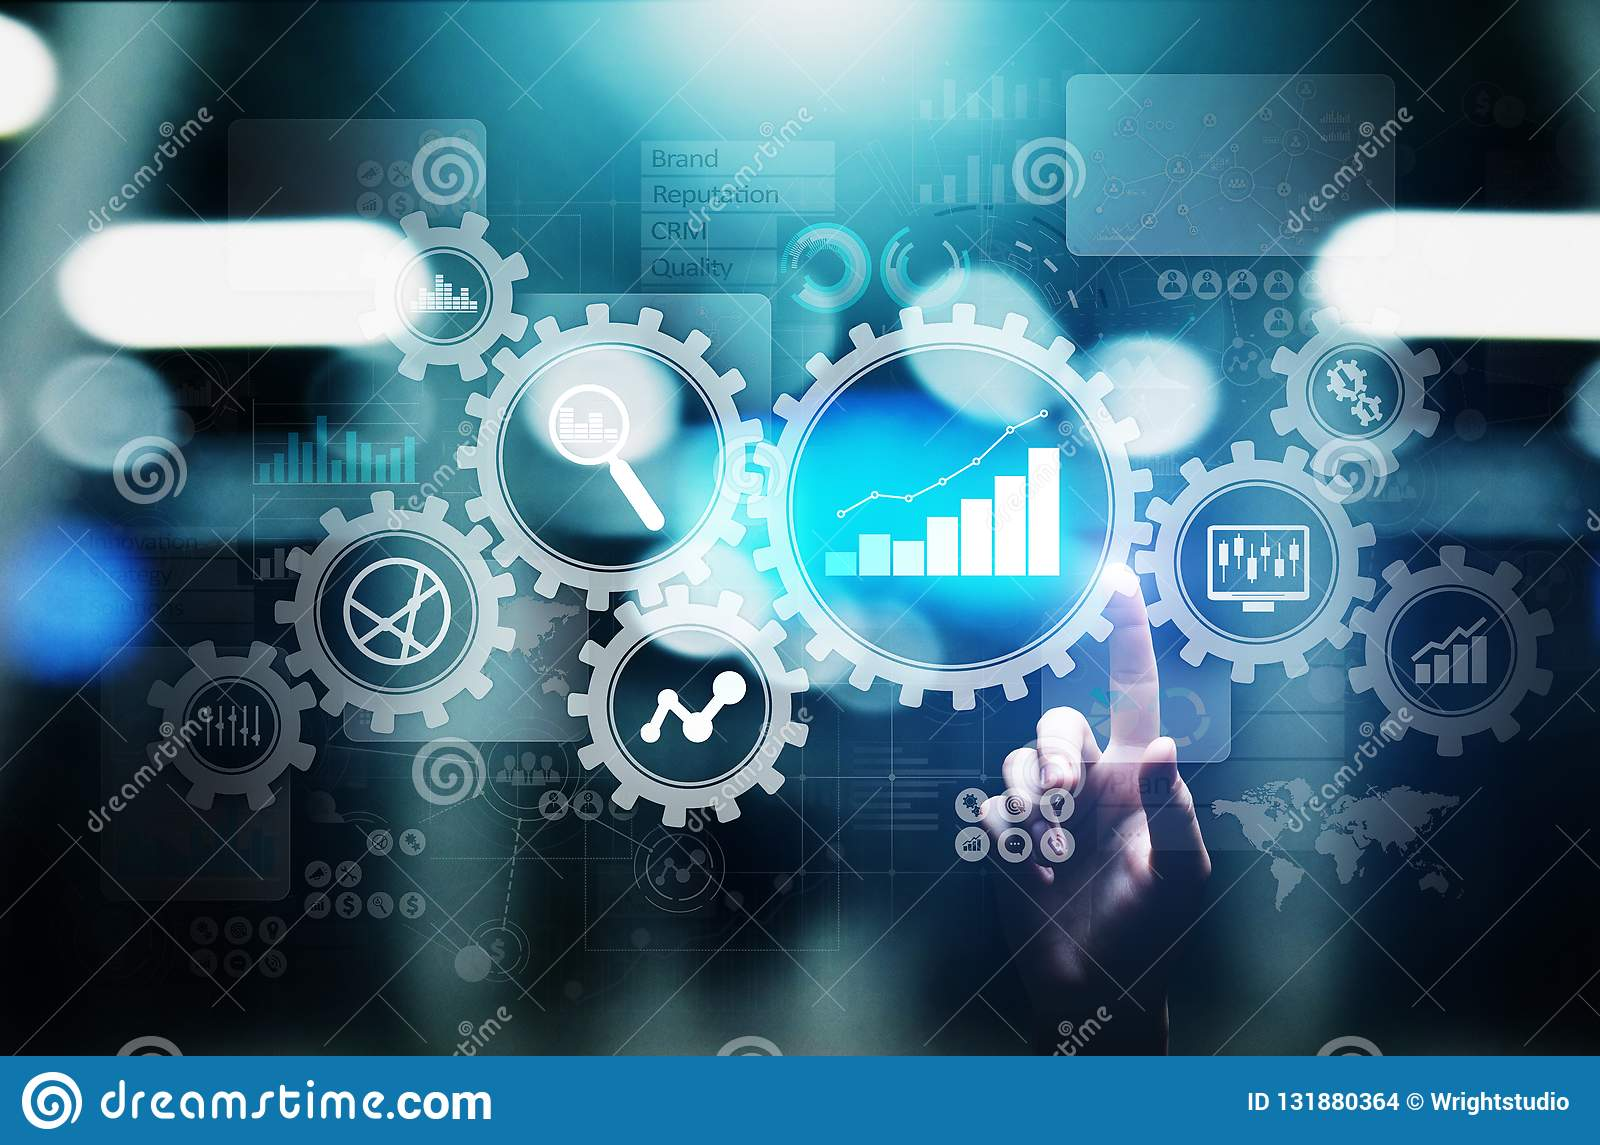 Big Data analysis, Business process analytics diagrams with gears and icons on virtual screen.